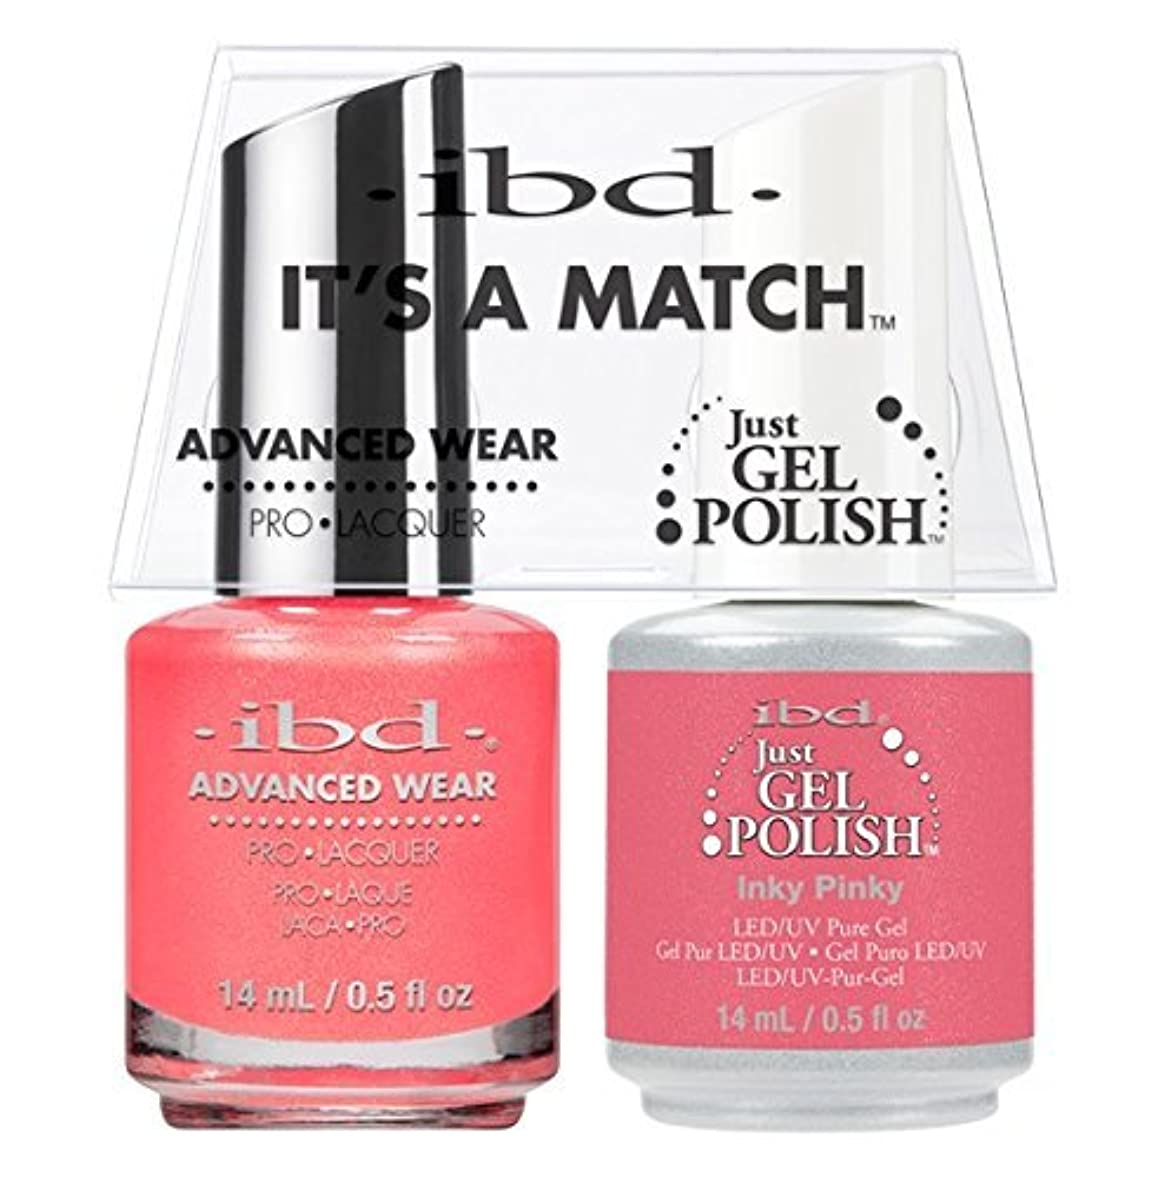 叙情的なハチ引っ張るibd - It's A Match -Duo Pack- Inky Pinky - 14 mL / 0.5 oz Each